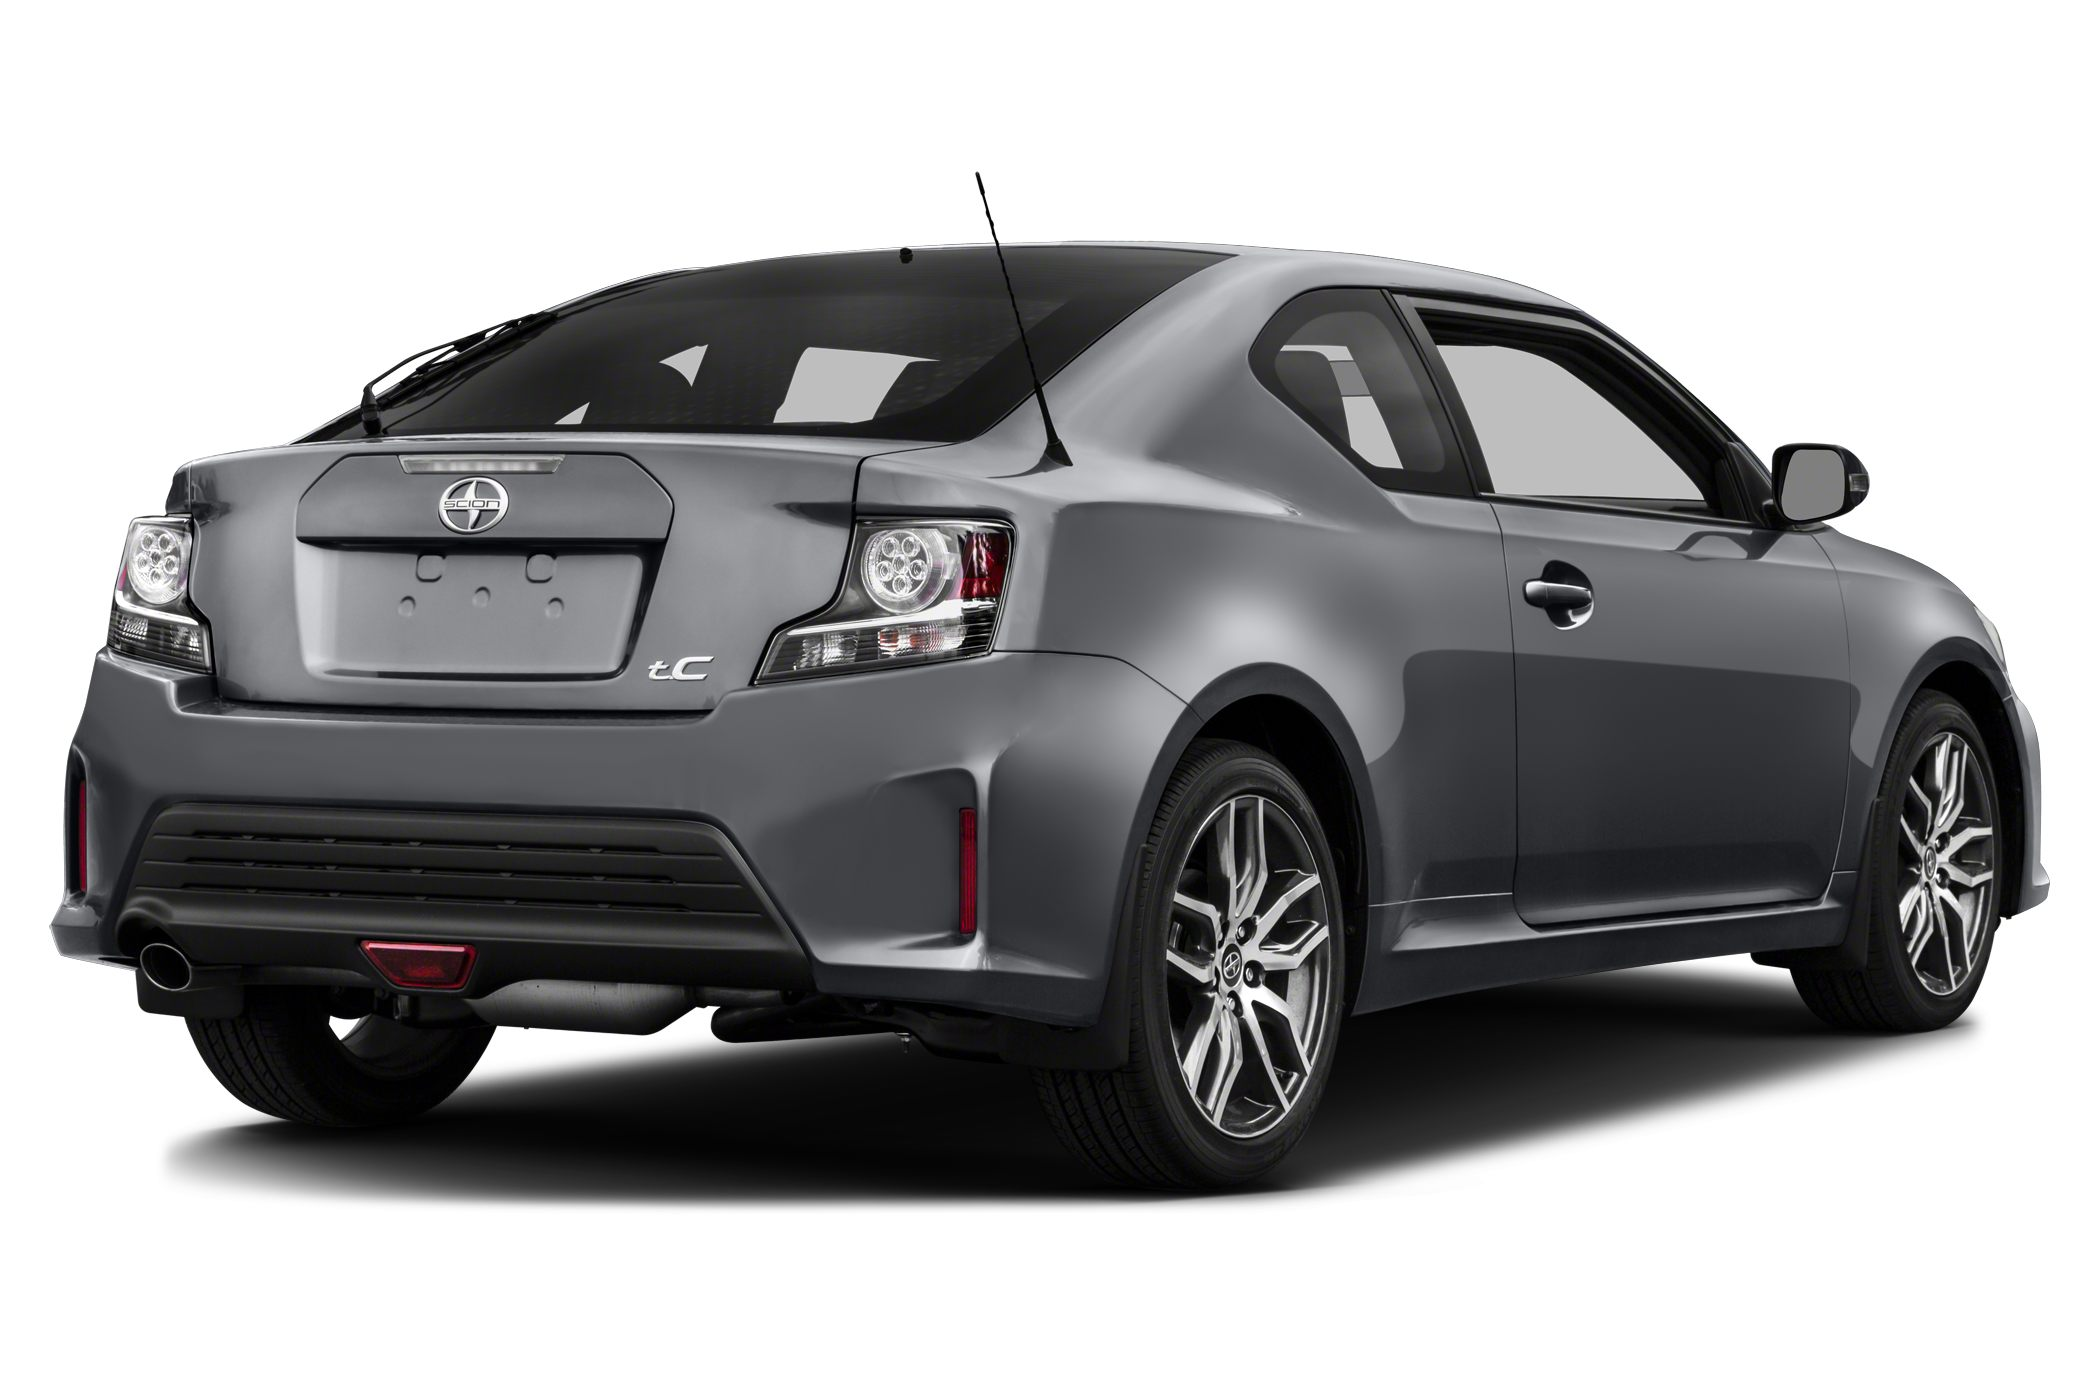 2014 Scion tC SPORTS 6-SPD ONE PRICE STOP NO HASSLE NO HAGGLE CAR BUYING EXPERIENCE Mi